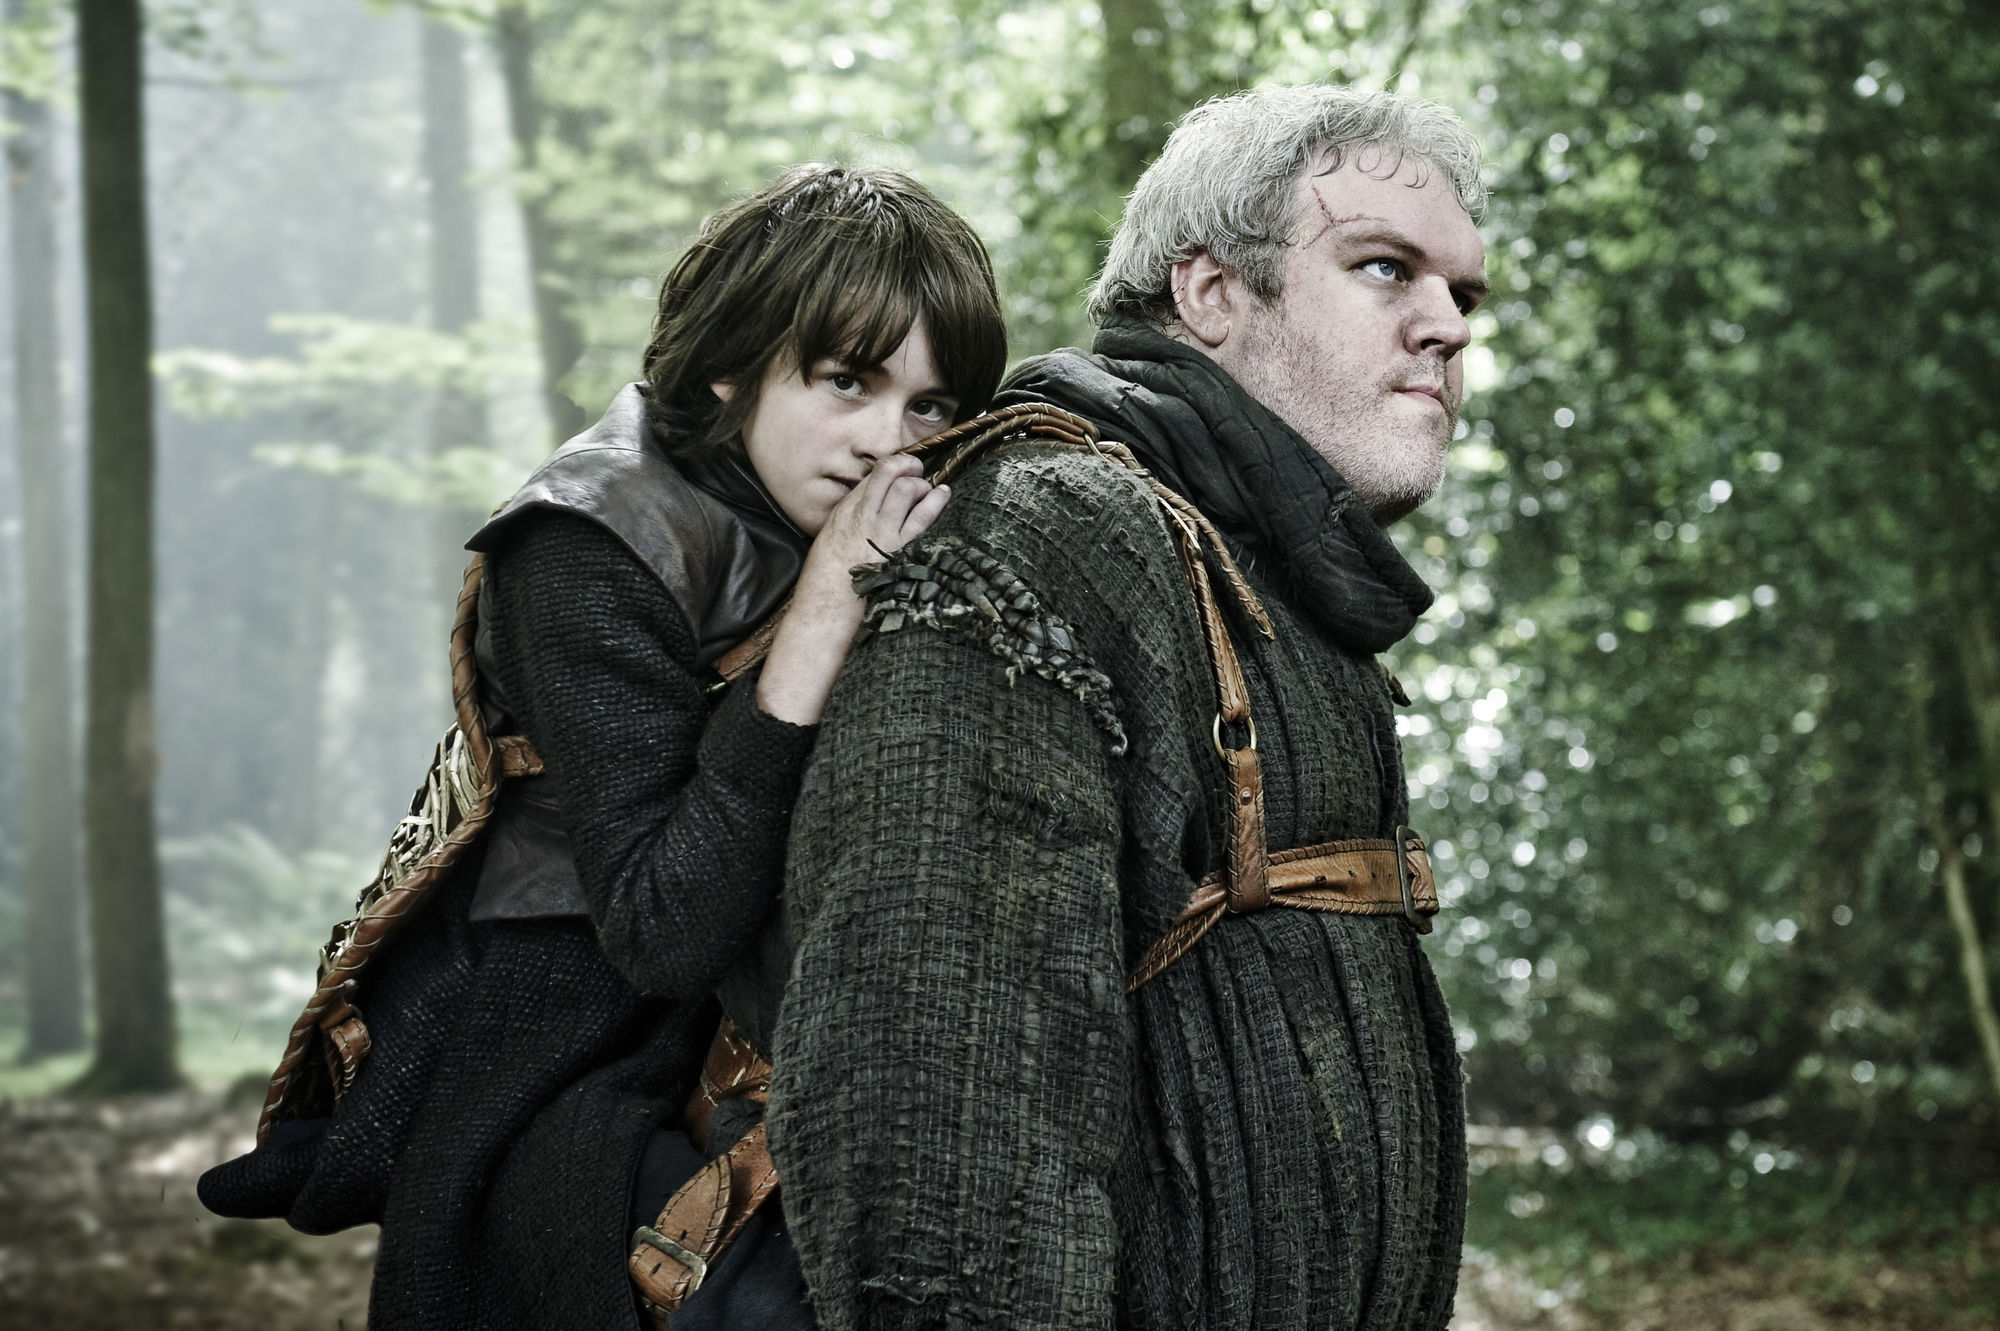 That major Hodor reveal came from George RR Martin